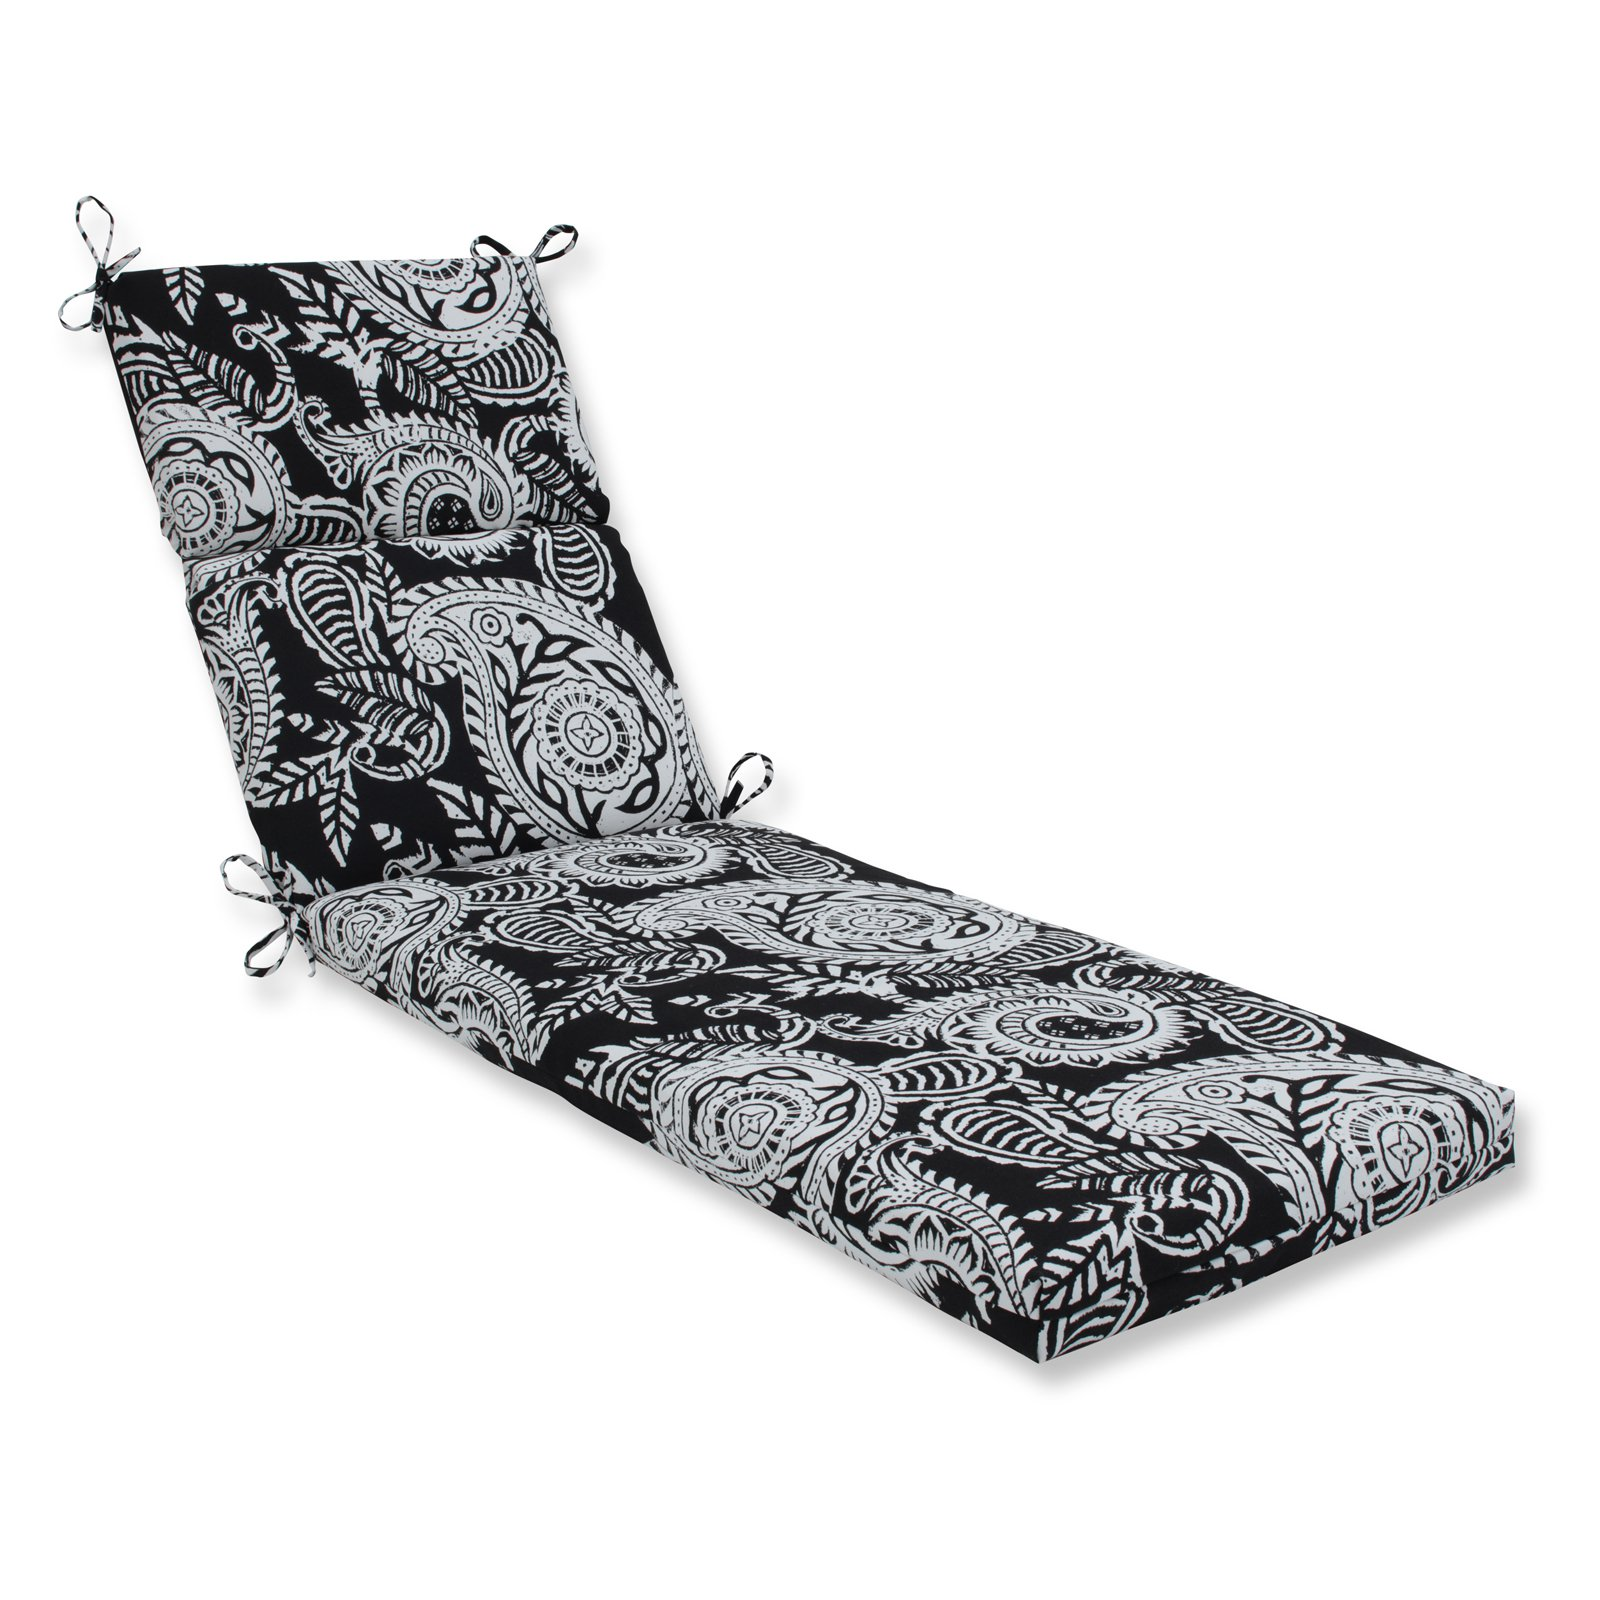 Pillow Perfect Outdoor/Indoor Addie Night Chaise Lounge Cushion